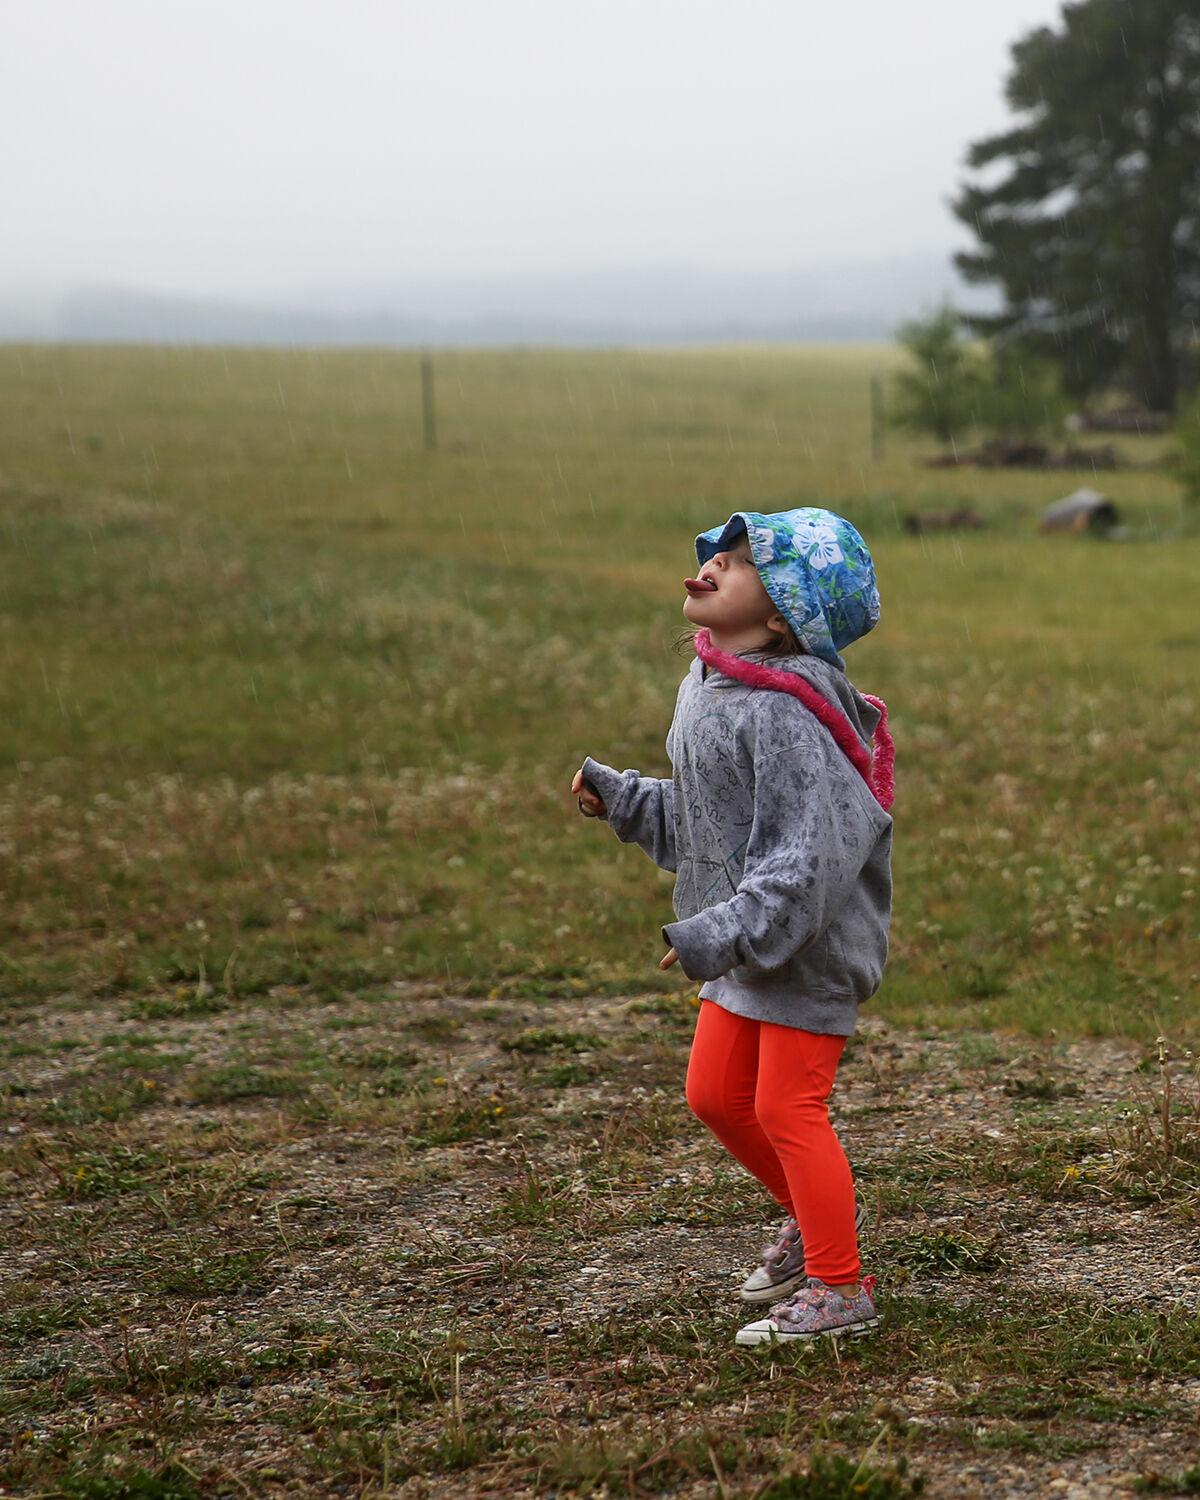 Gracy Alger spins in the rain, catching water droplets on her tongue